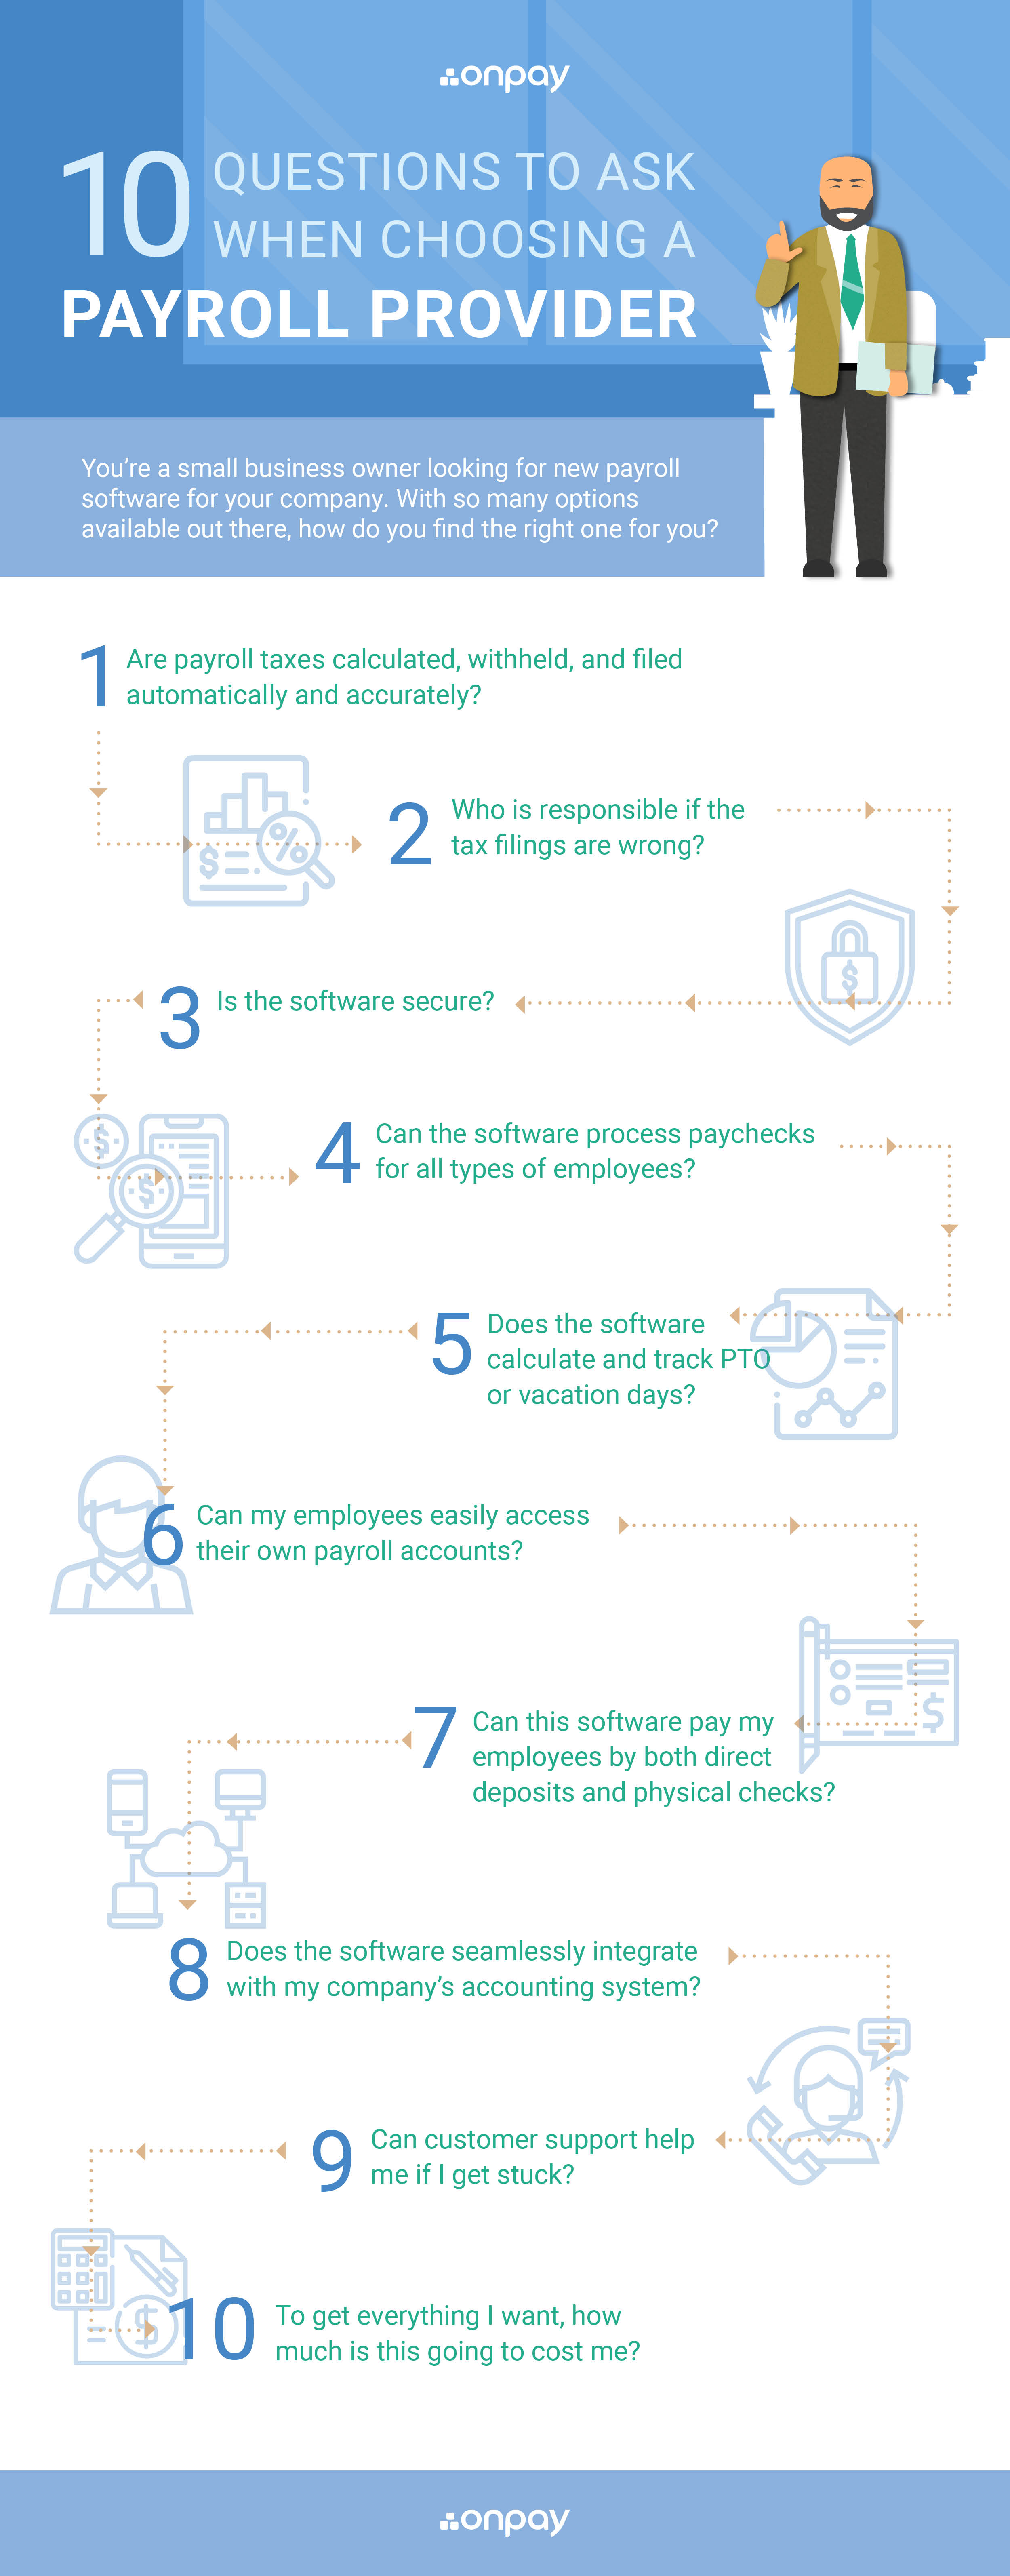 Infographic showing 10 key factors for choosing a good payroll provider.